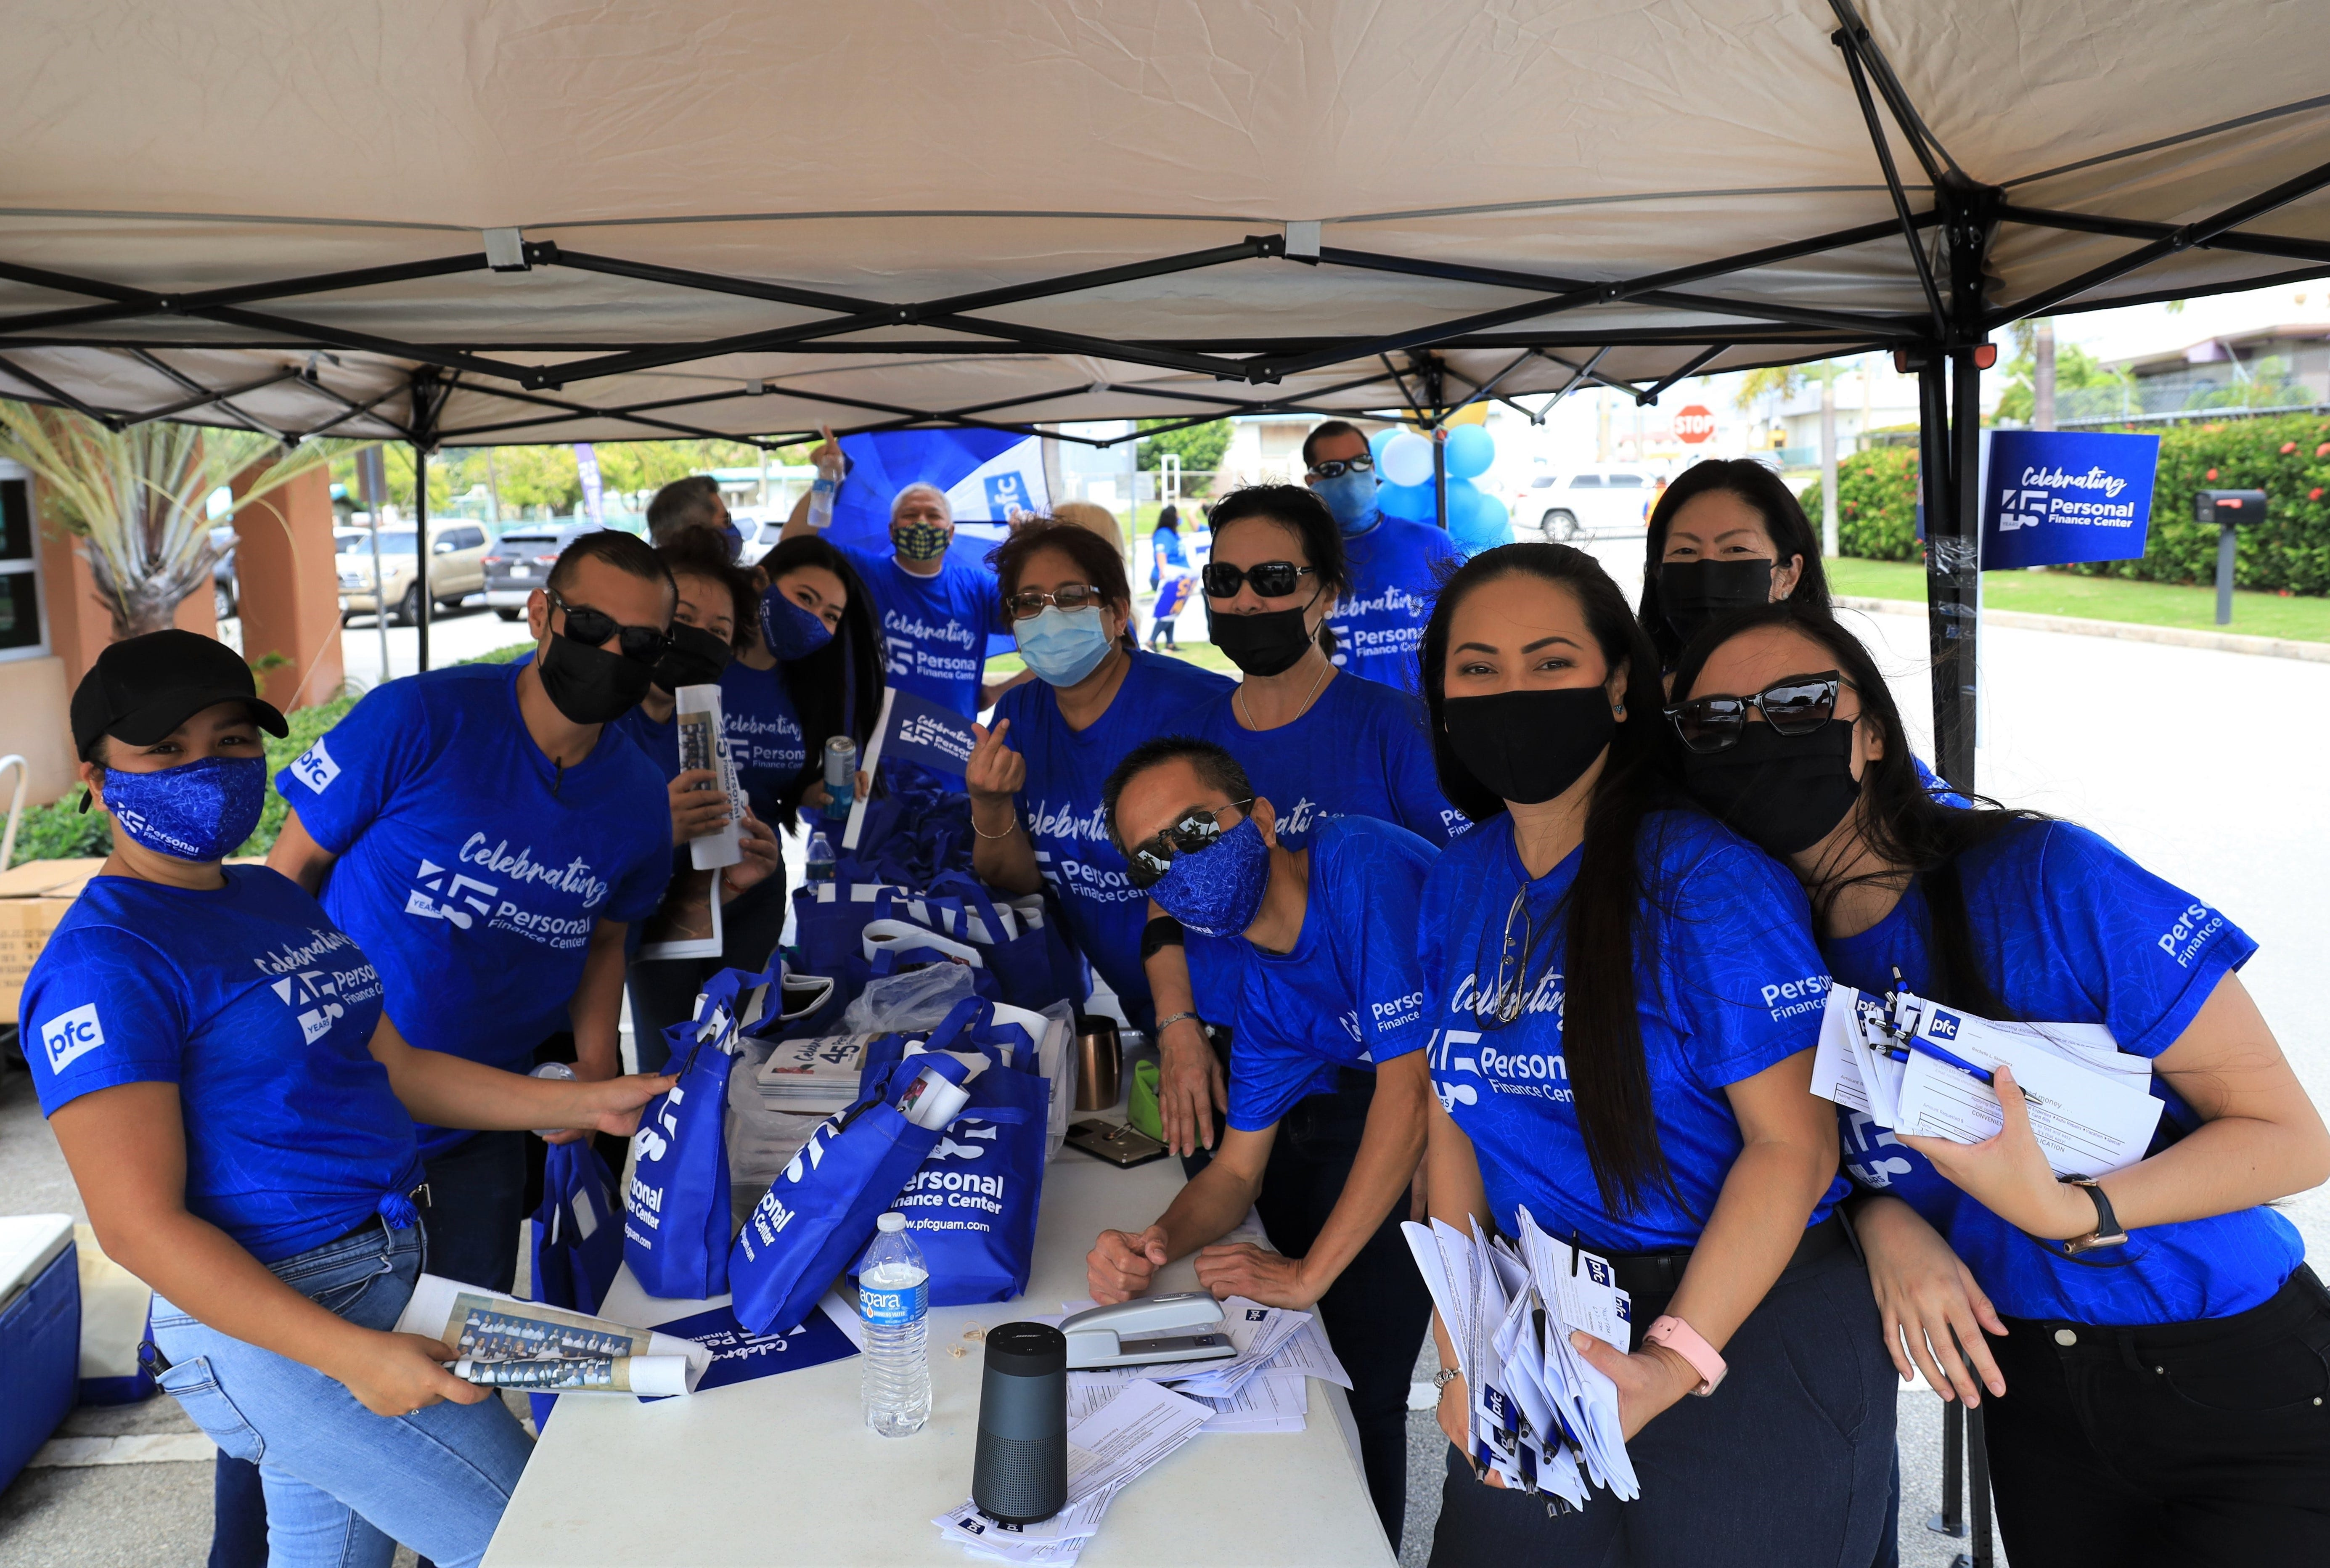 Employees of Personal Finance Center in Tamuning celebrated the company's 45th anniversary on Thursday, May 29, 2021.